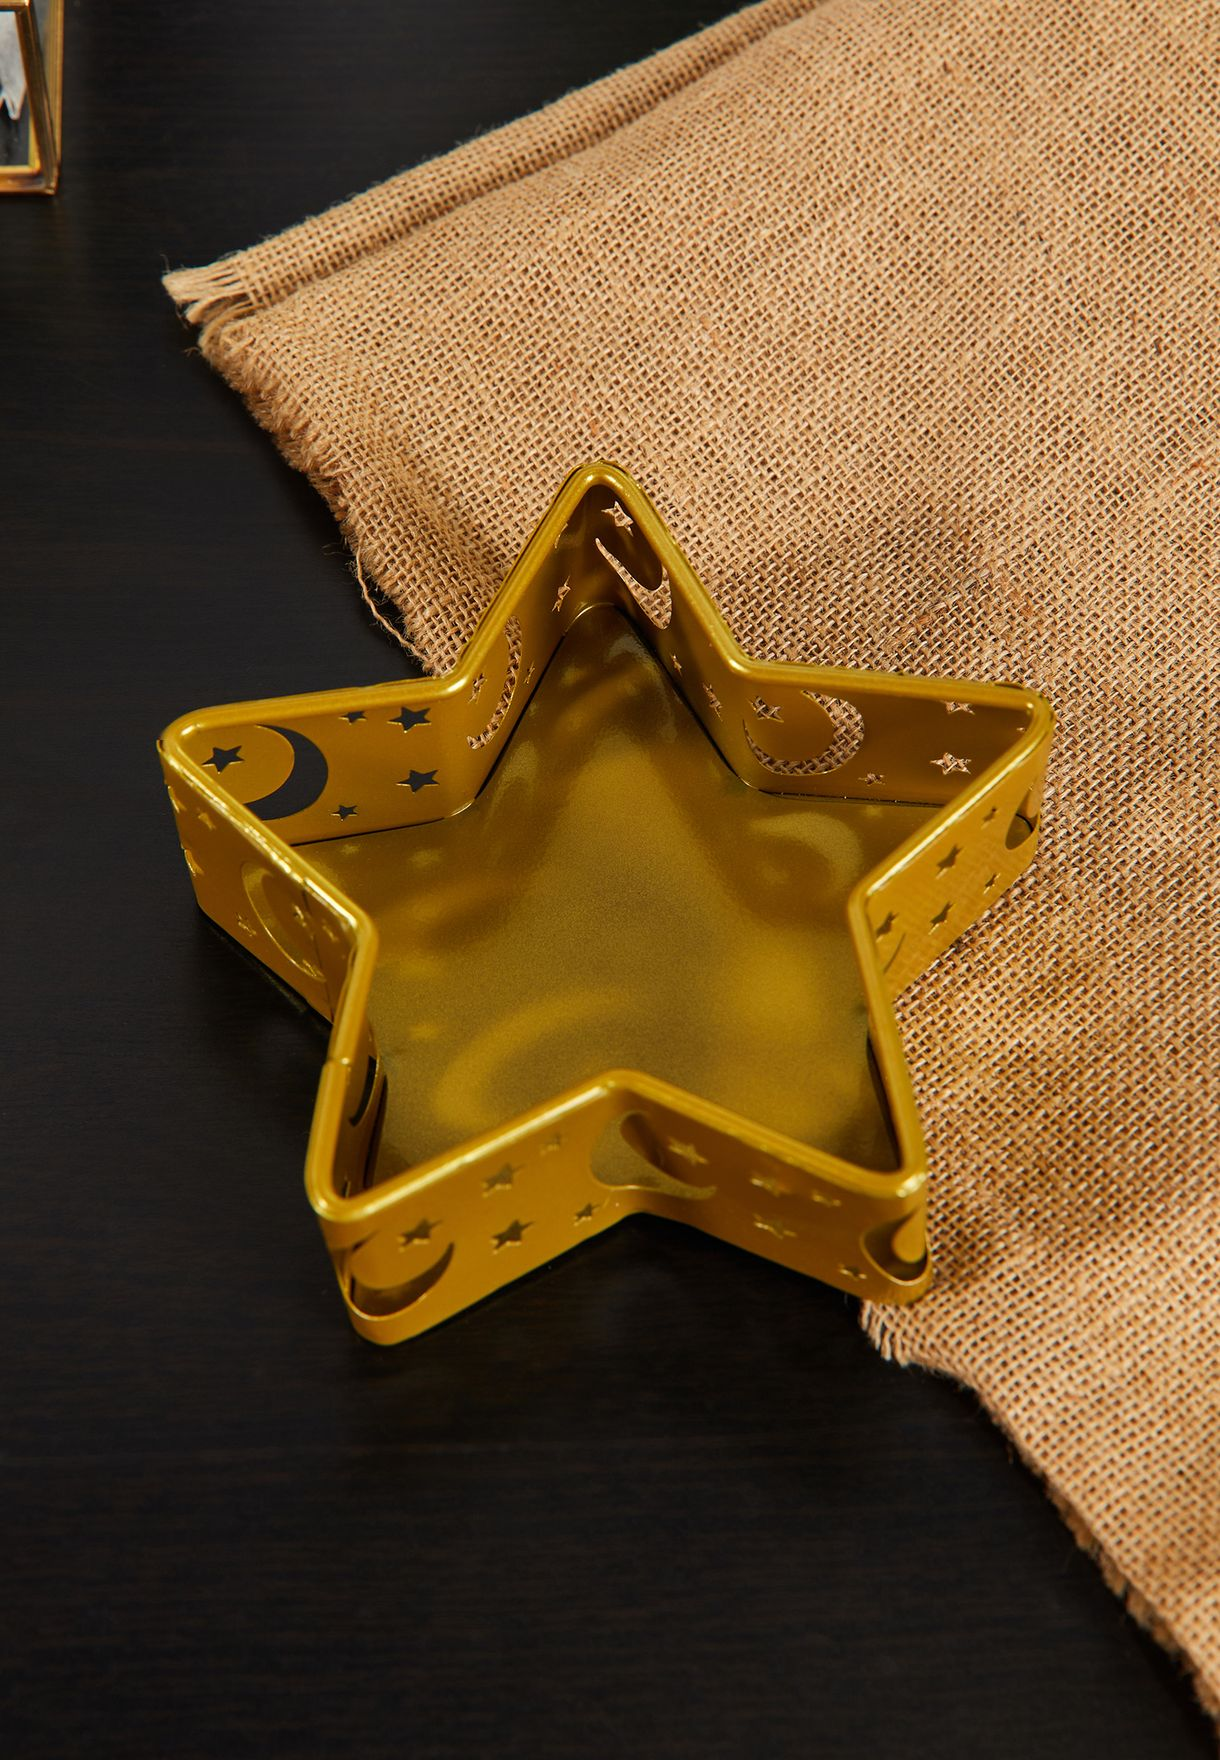 Moon & Star Serving Trays